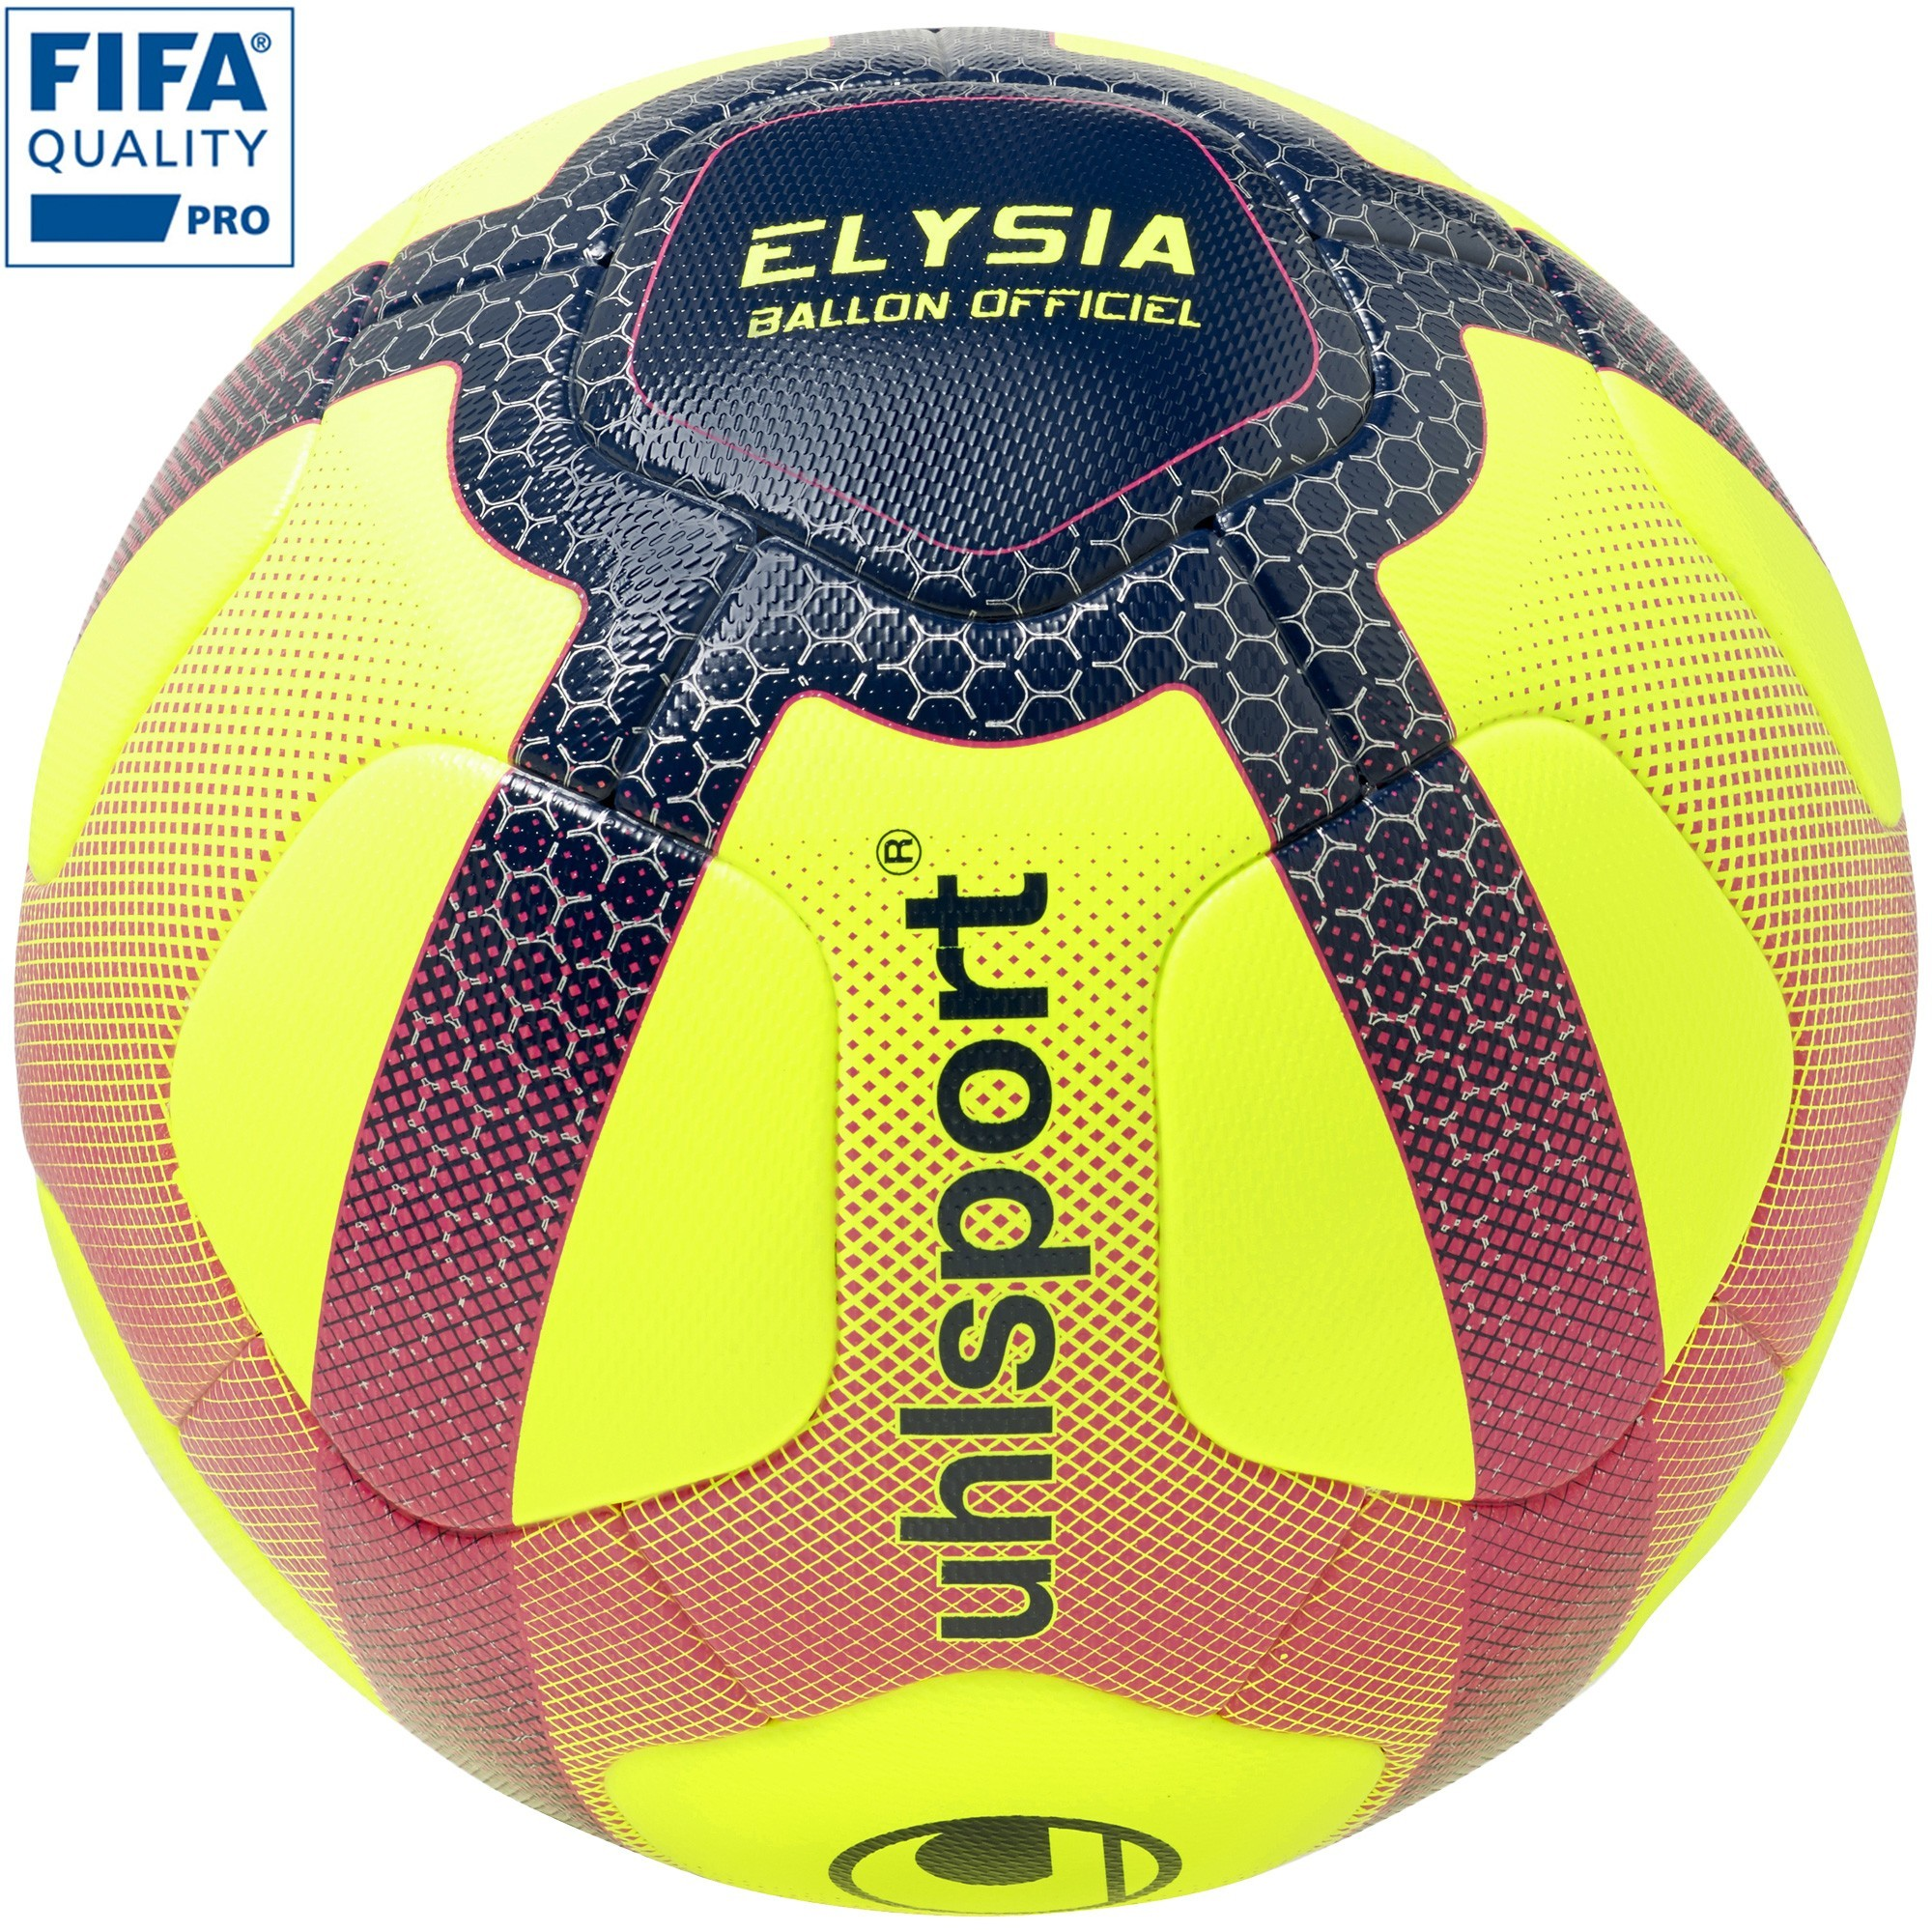 Ballon Officiel Elysia Ligue 1 Conforama